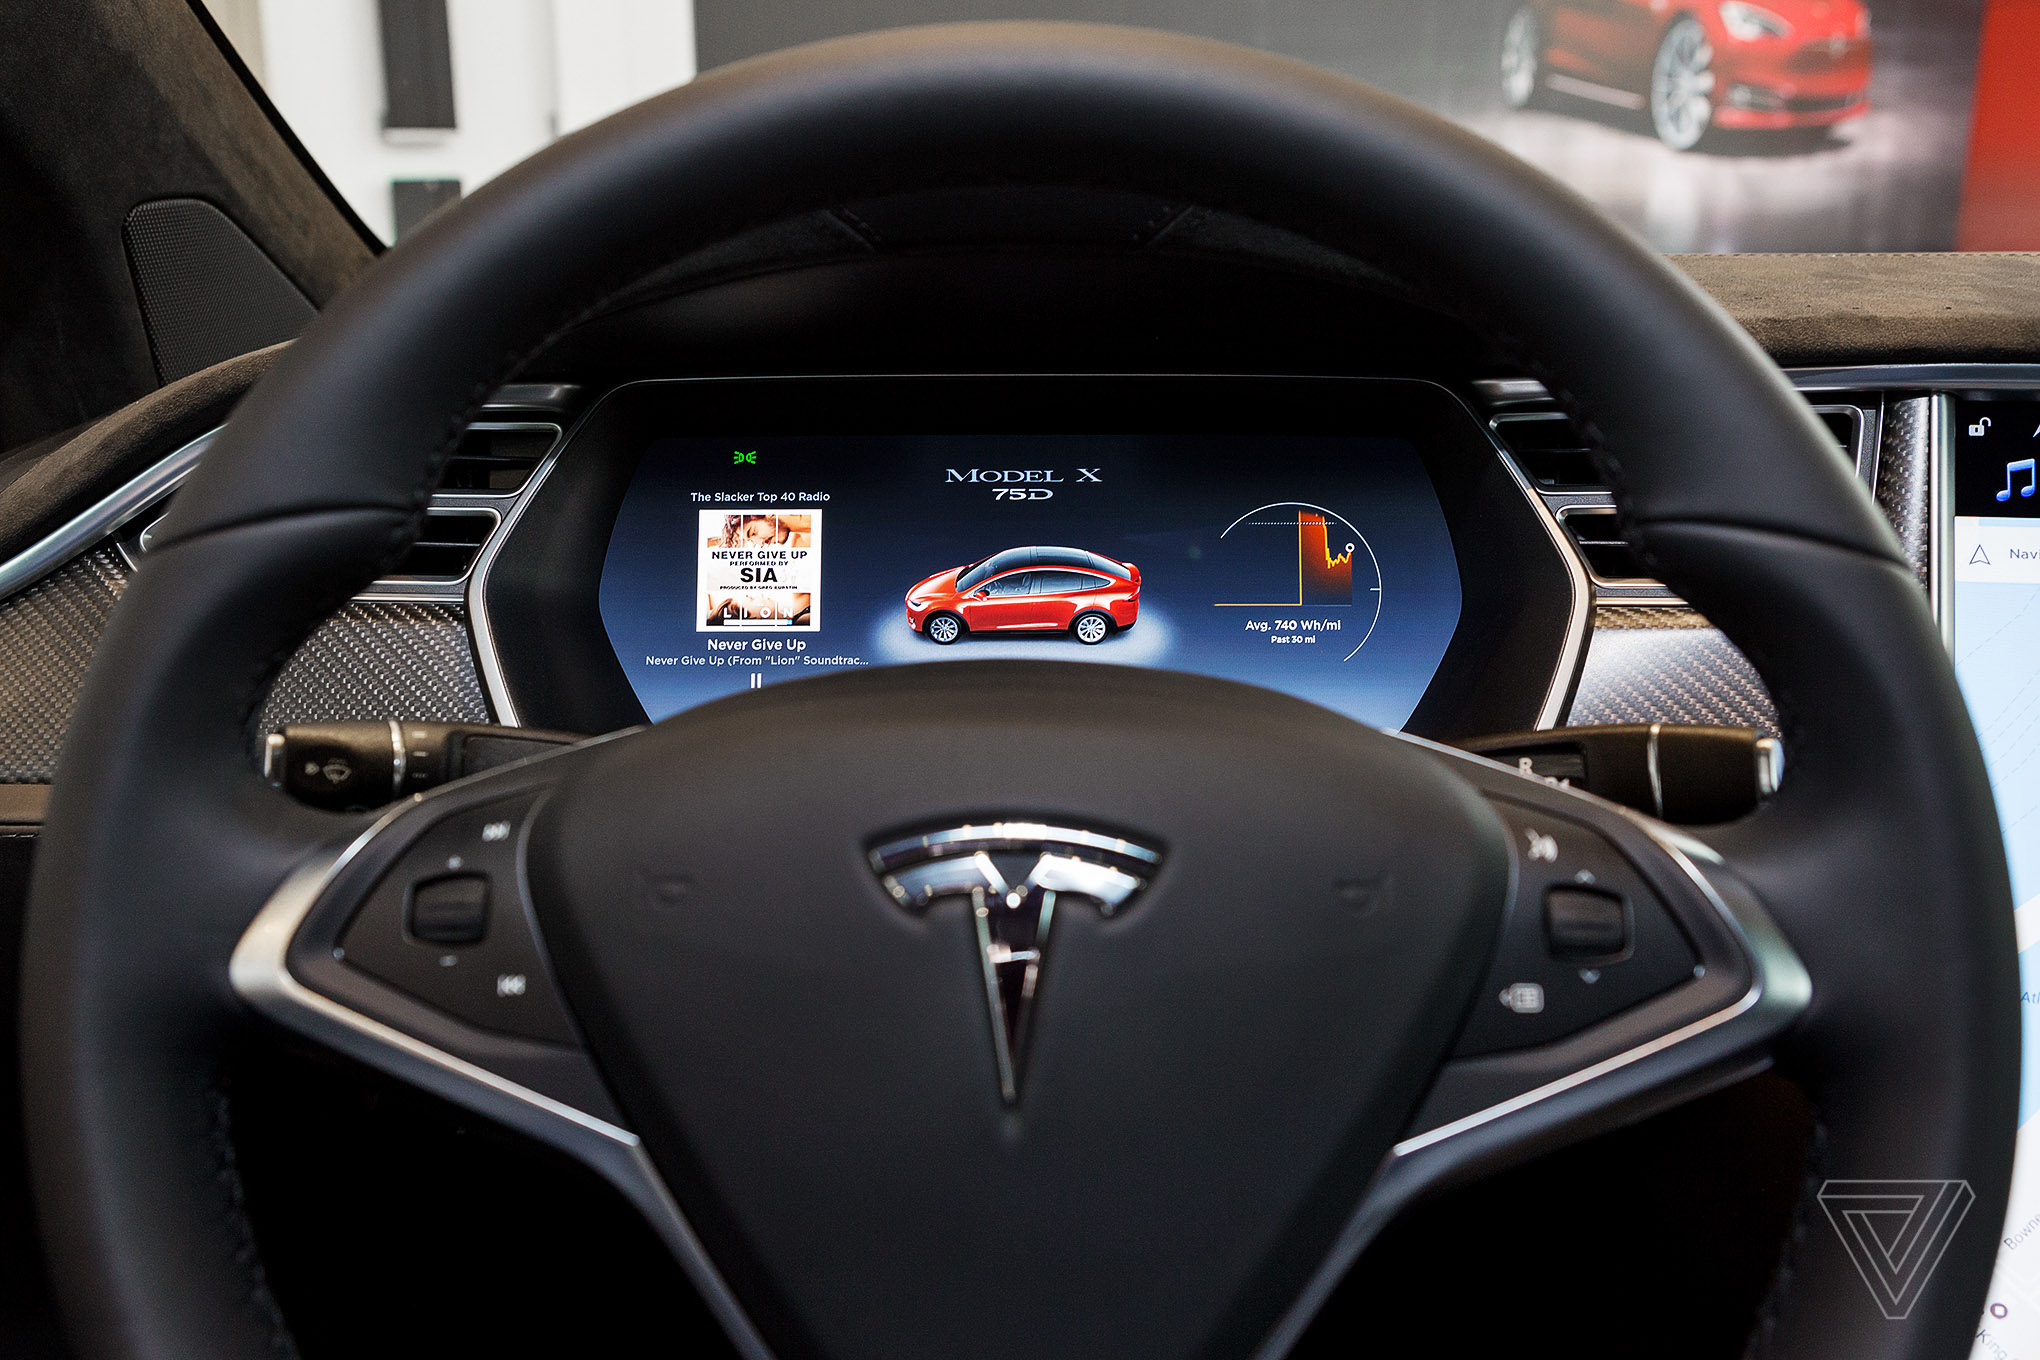 Elon Musk Just Teased Some Tantalizing Details About Tesla